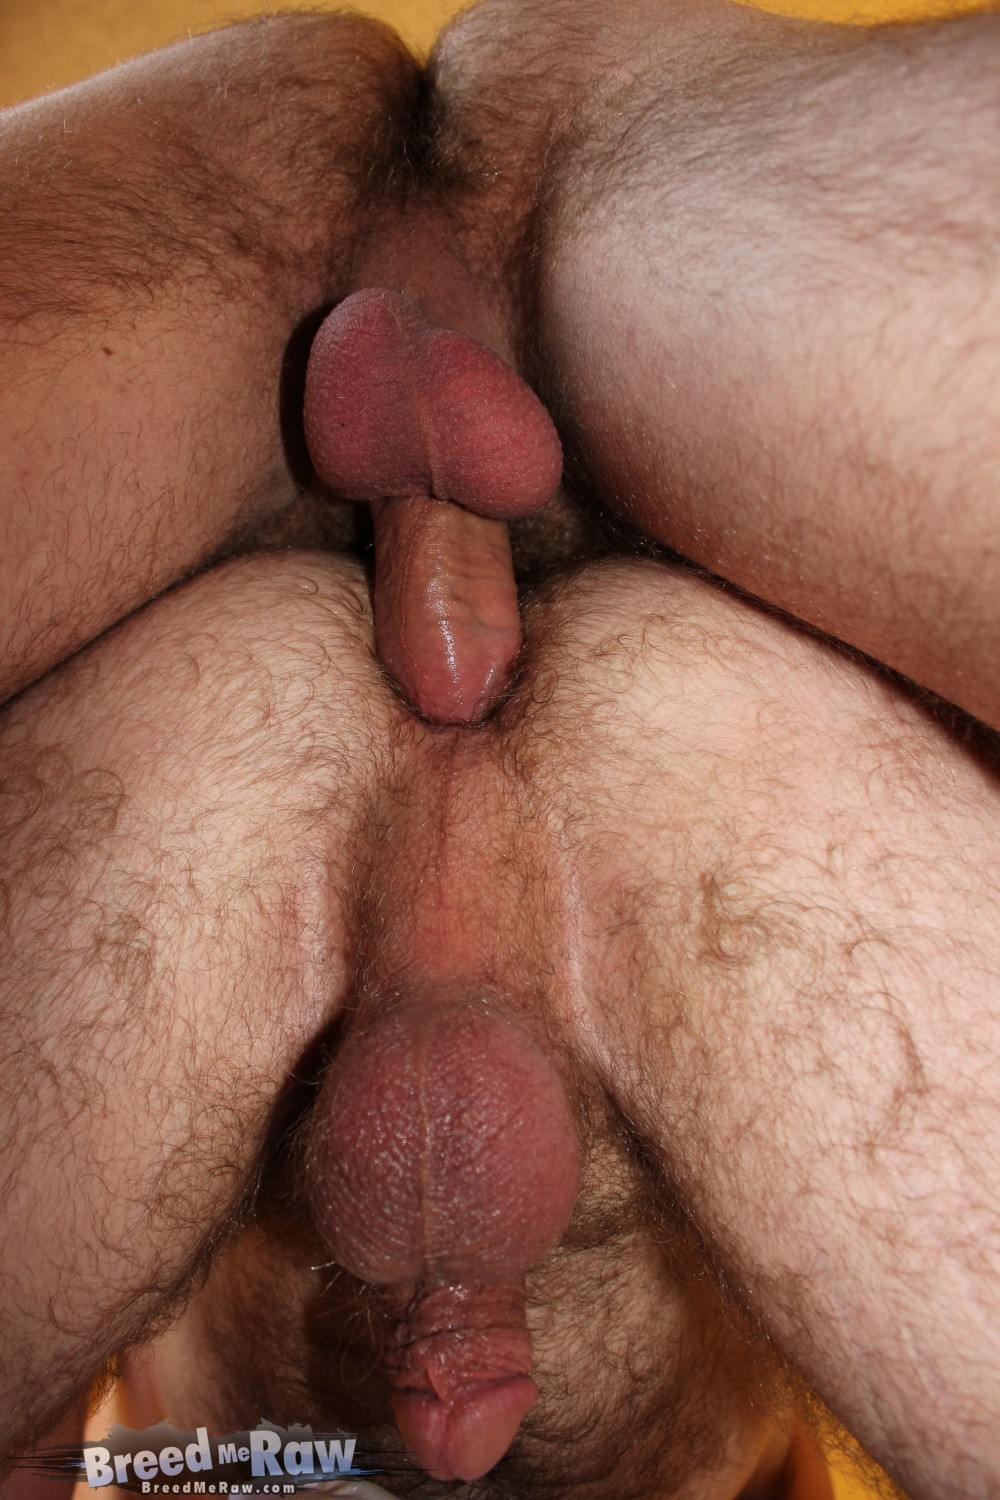 Breed Me Raw Butch Bloom and James Roscoe Bareback Fucking BBBH Big Cock 14 Hairy Hot Amateur Hole Gets Barebacked By A Masculine Hung Cock